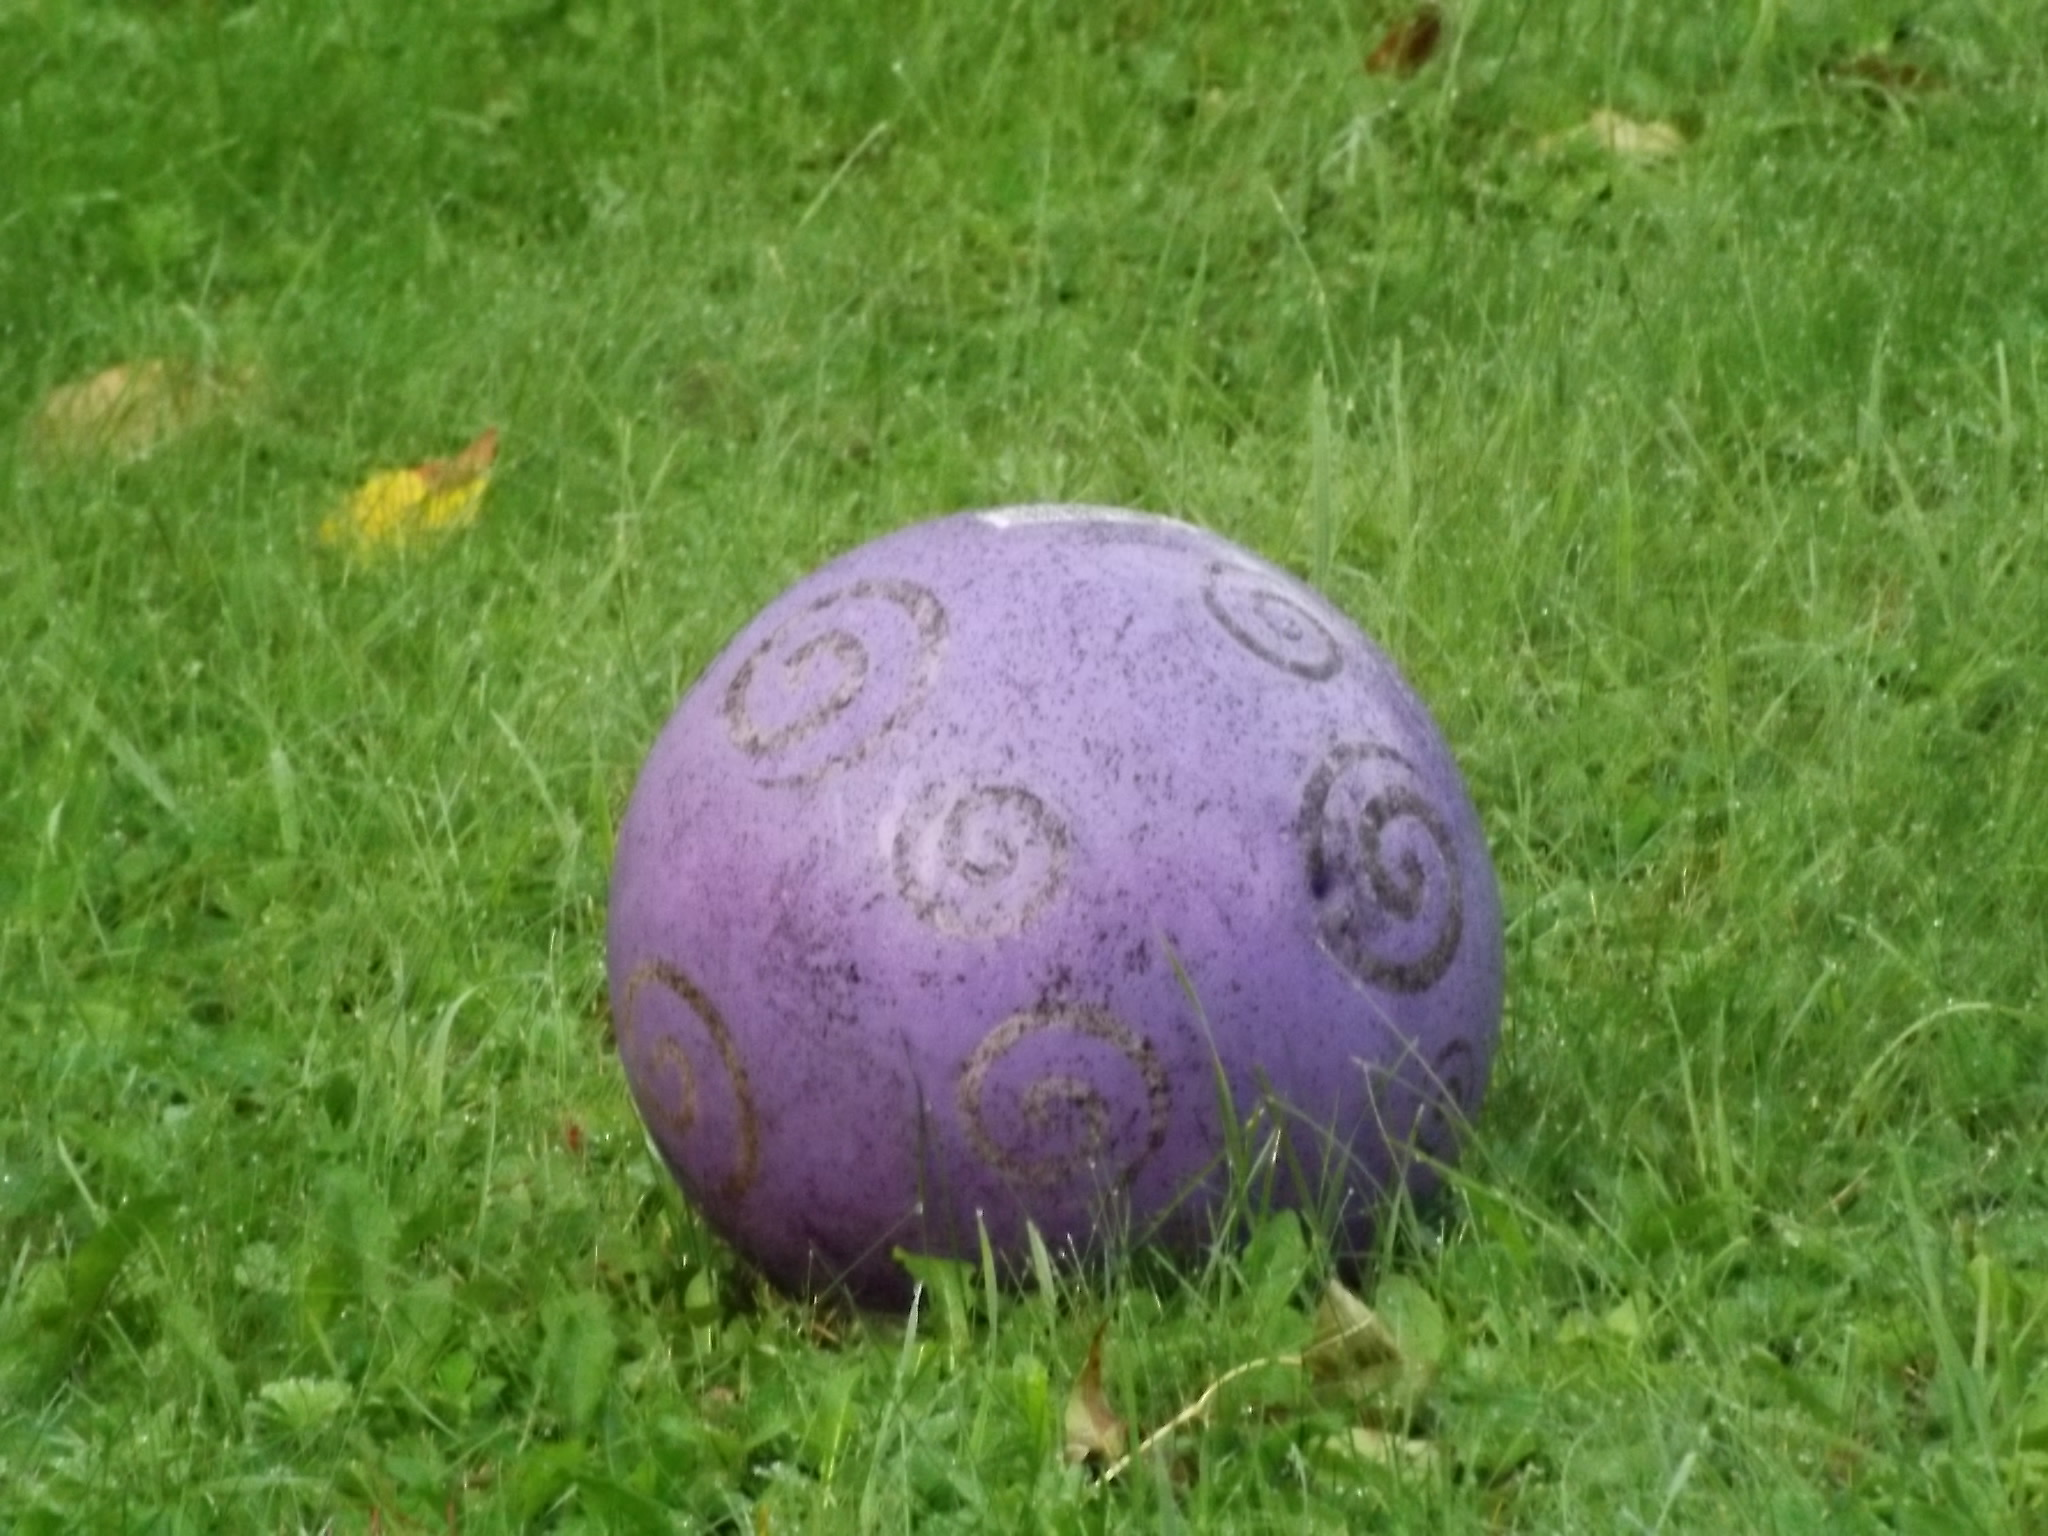 purple ball in the back yard called wallyball